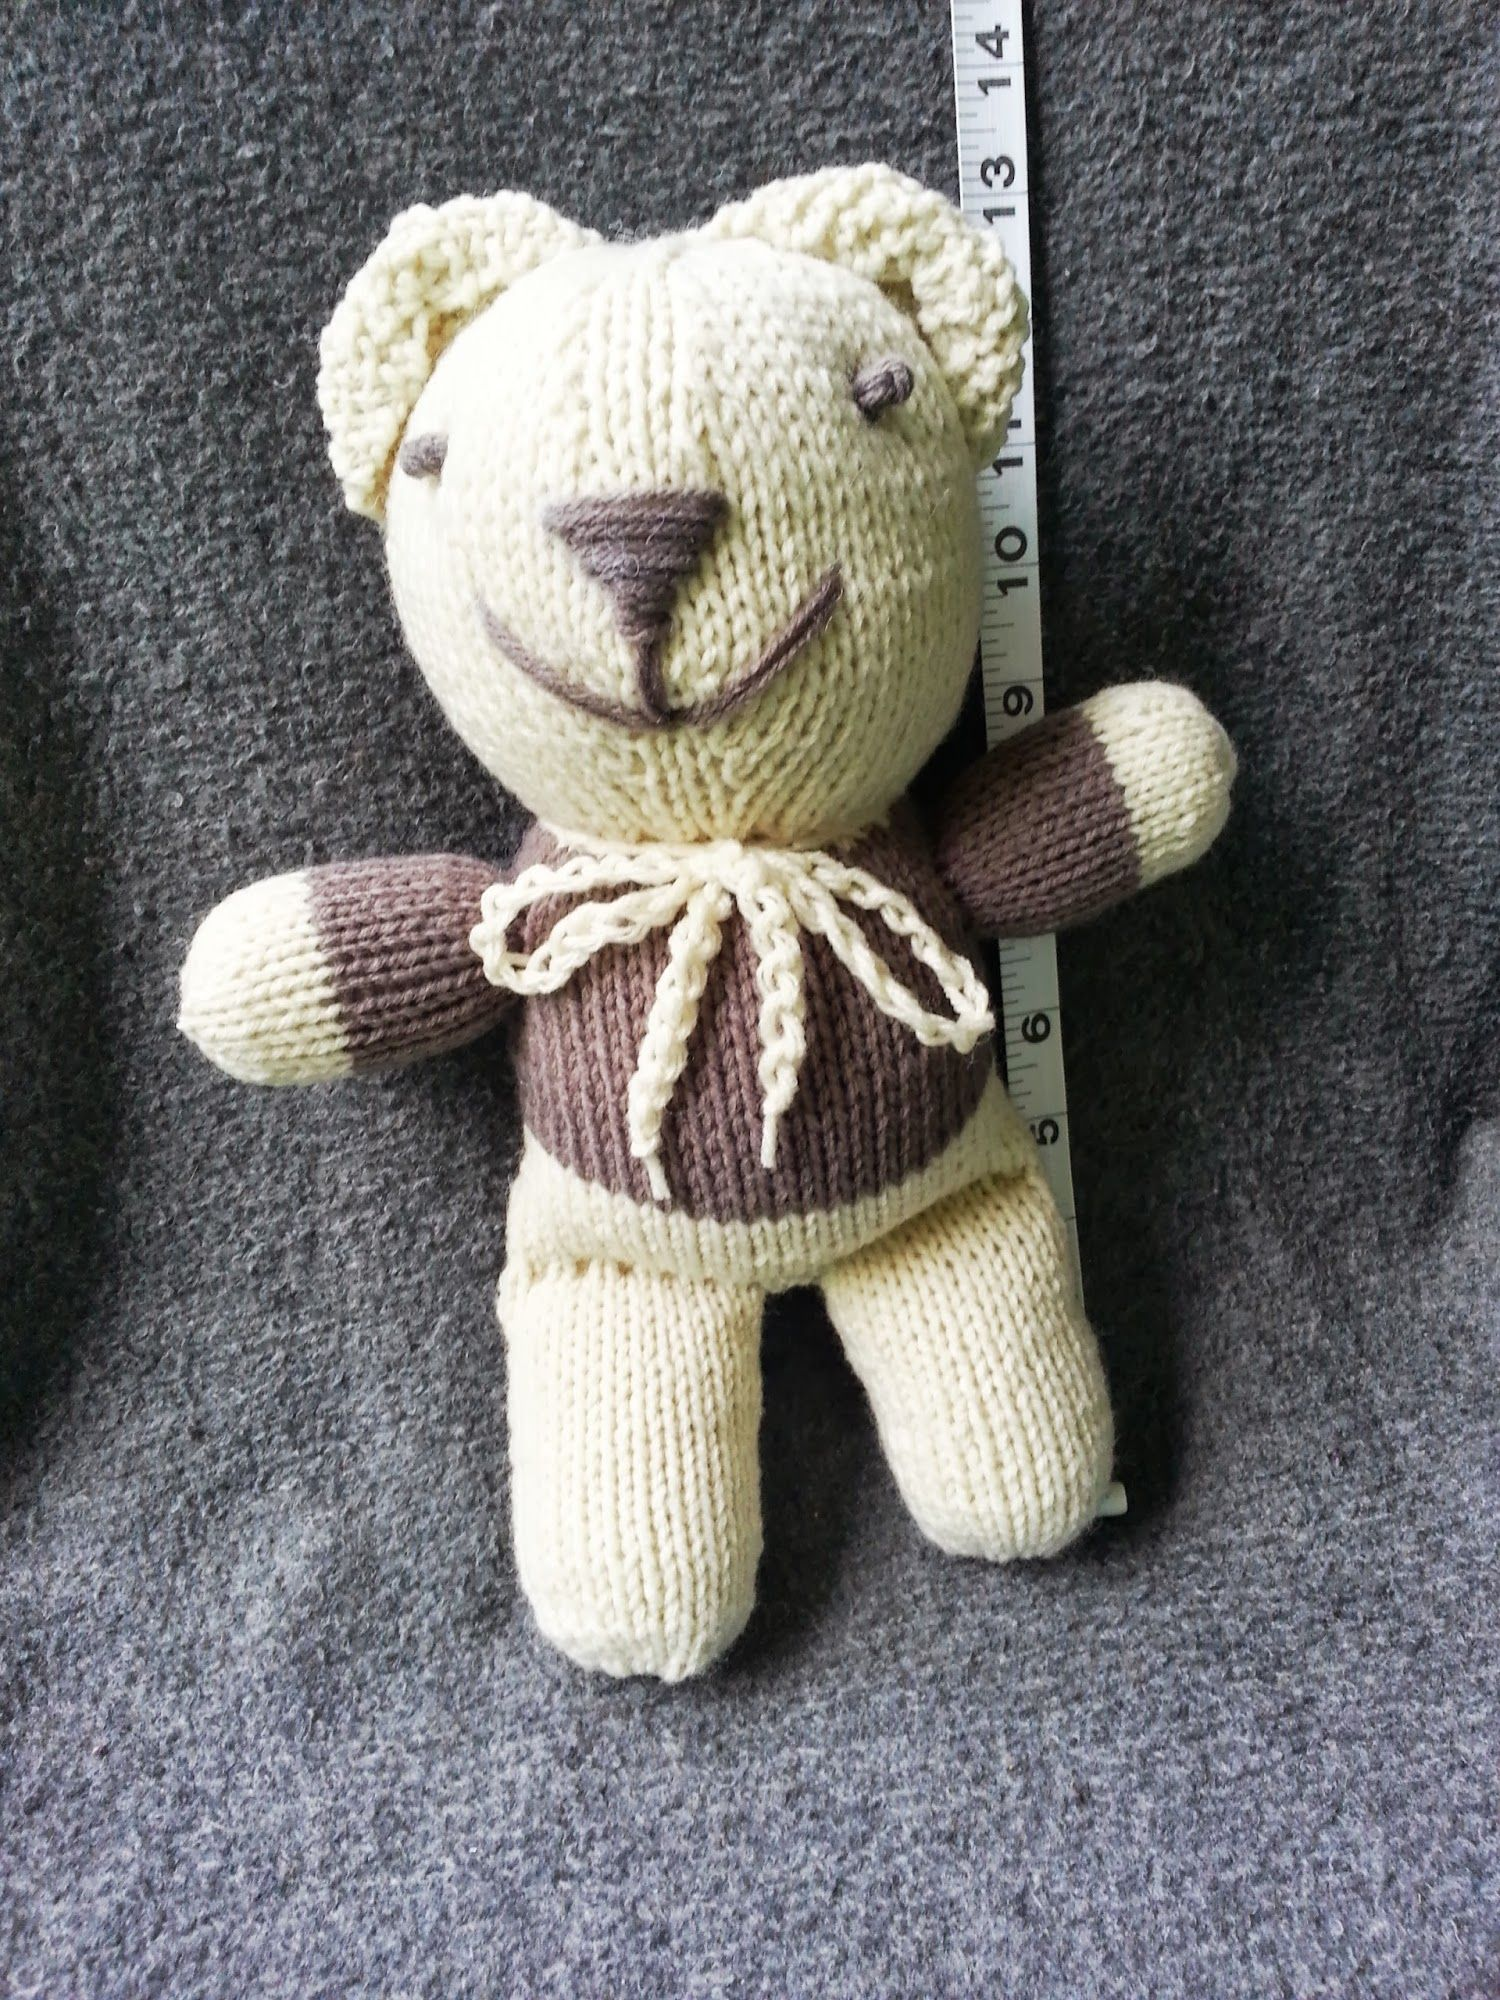 Knitting Toys In The Round : Knit in the round teddy bear free pattern knitting